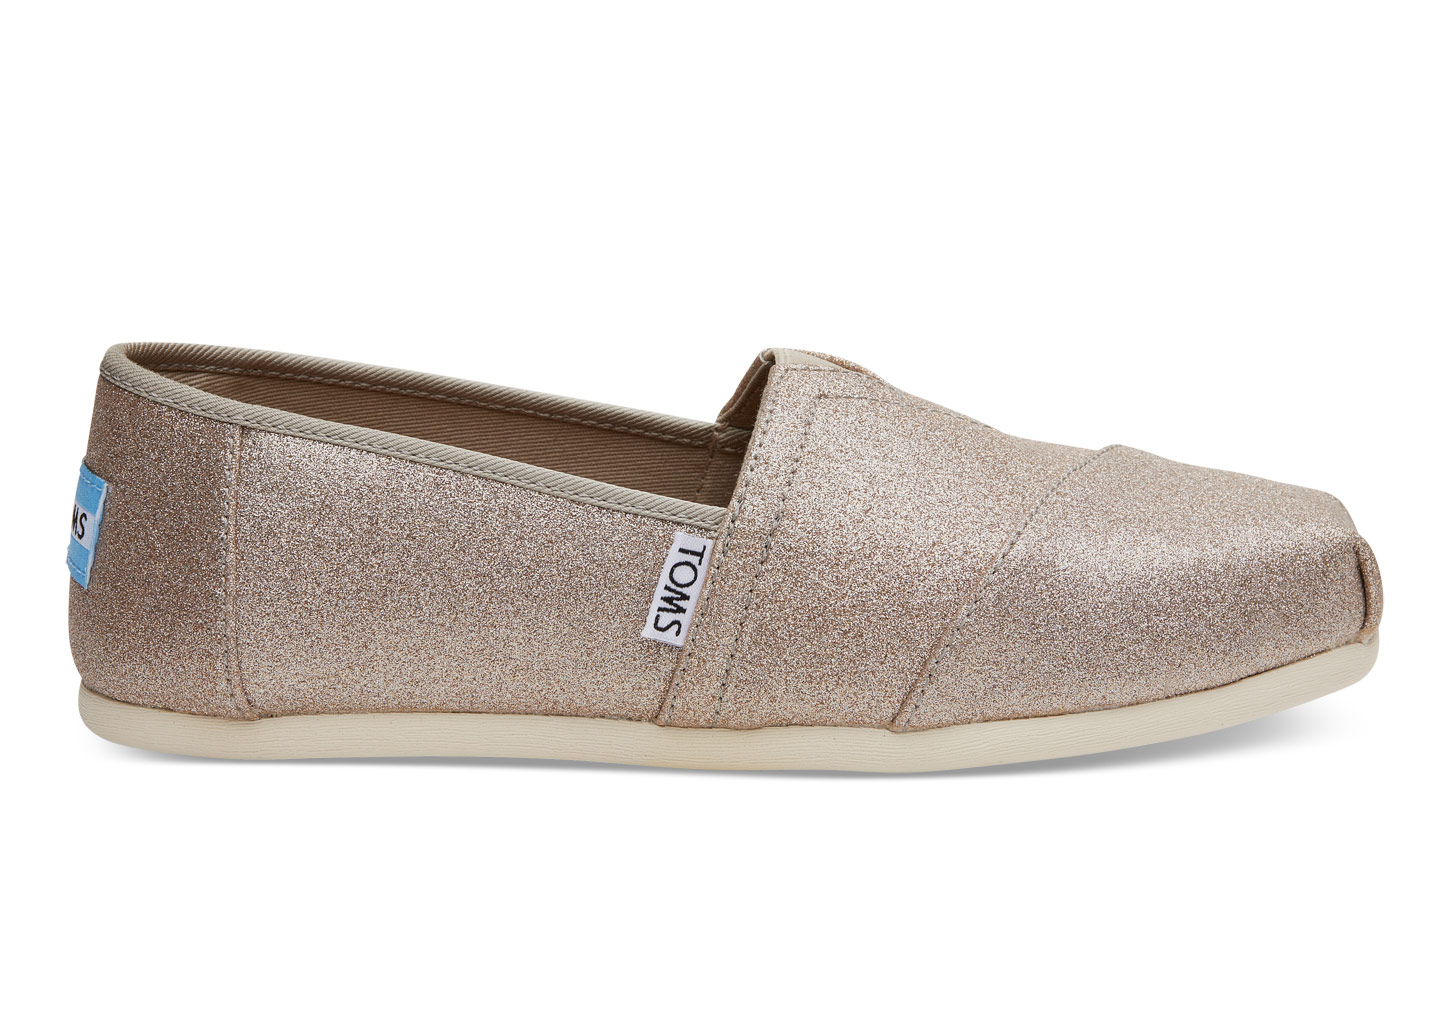 Shoes by Toms: A must-have for the women's shoe cabinet